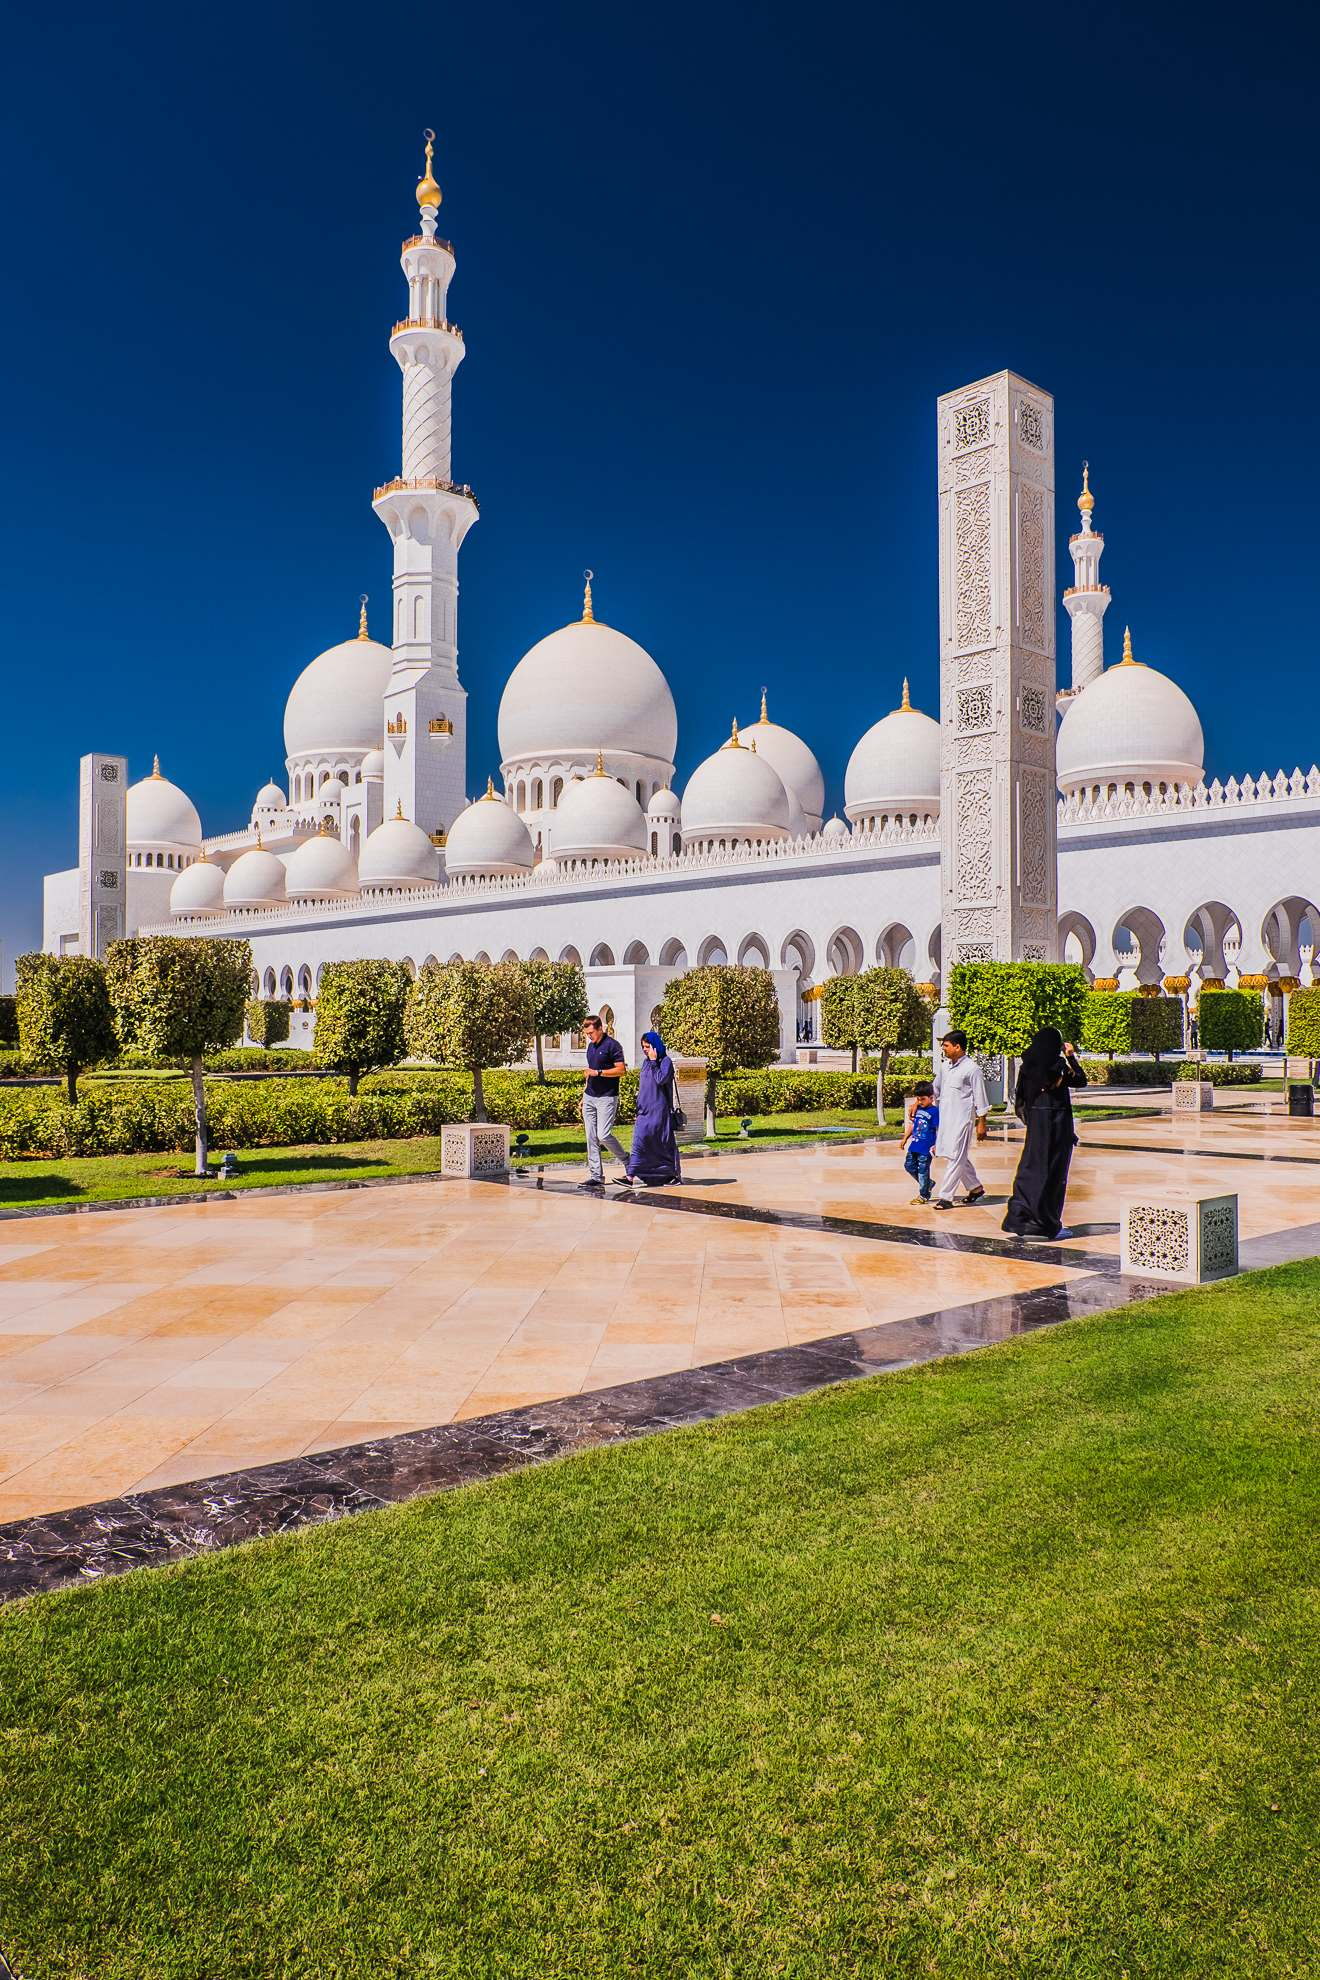 sheikh zayed grand mosque Picturesque Sheikh Zayed Grand Mosque in Abu Dhabi